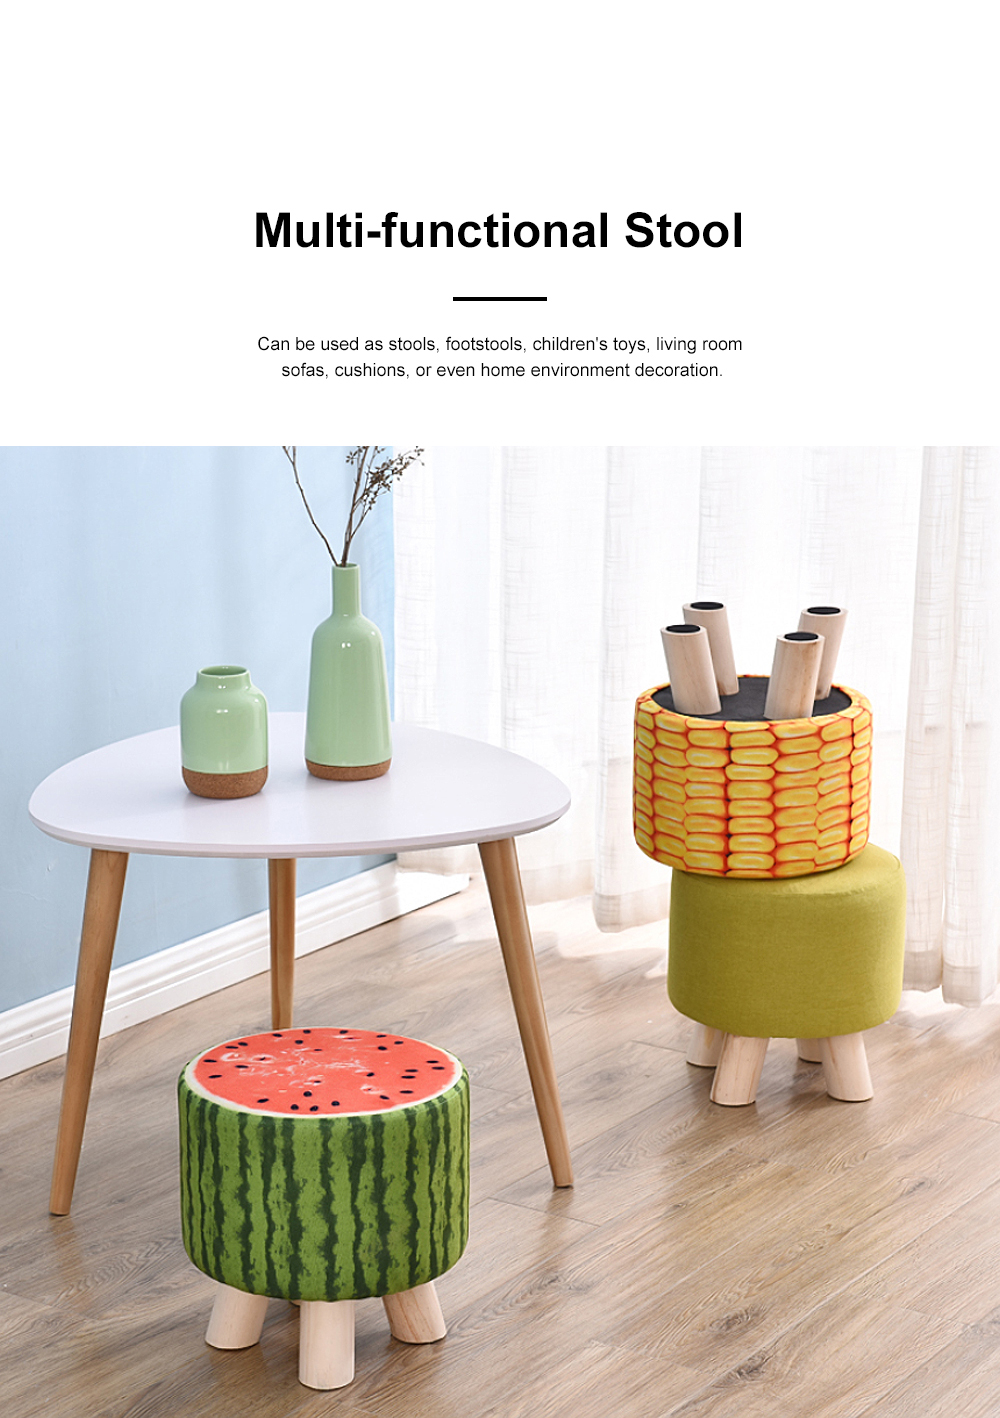 Solid Wood Footstool Ottoman with Four Wooden Legs and Removable Linen Cover Decorative Stool for Home Use 4